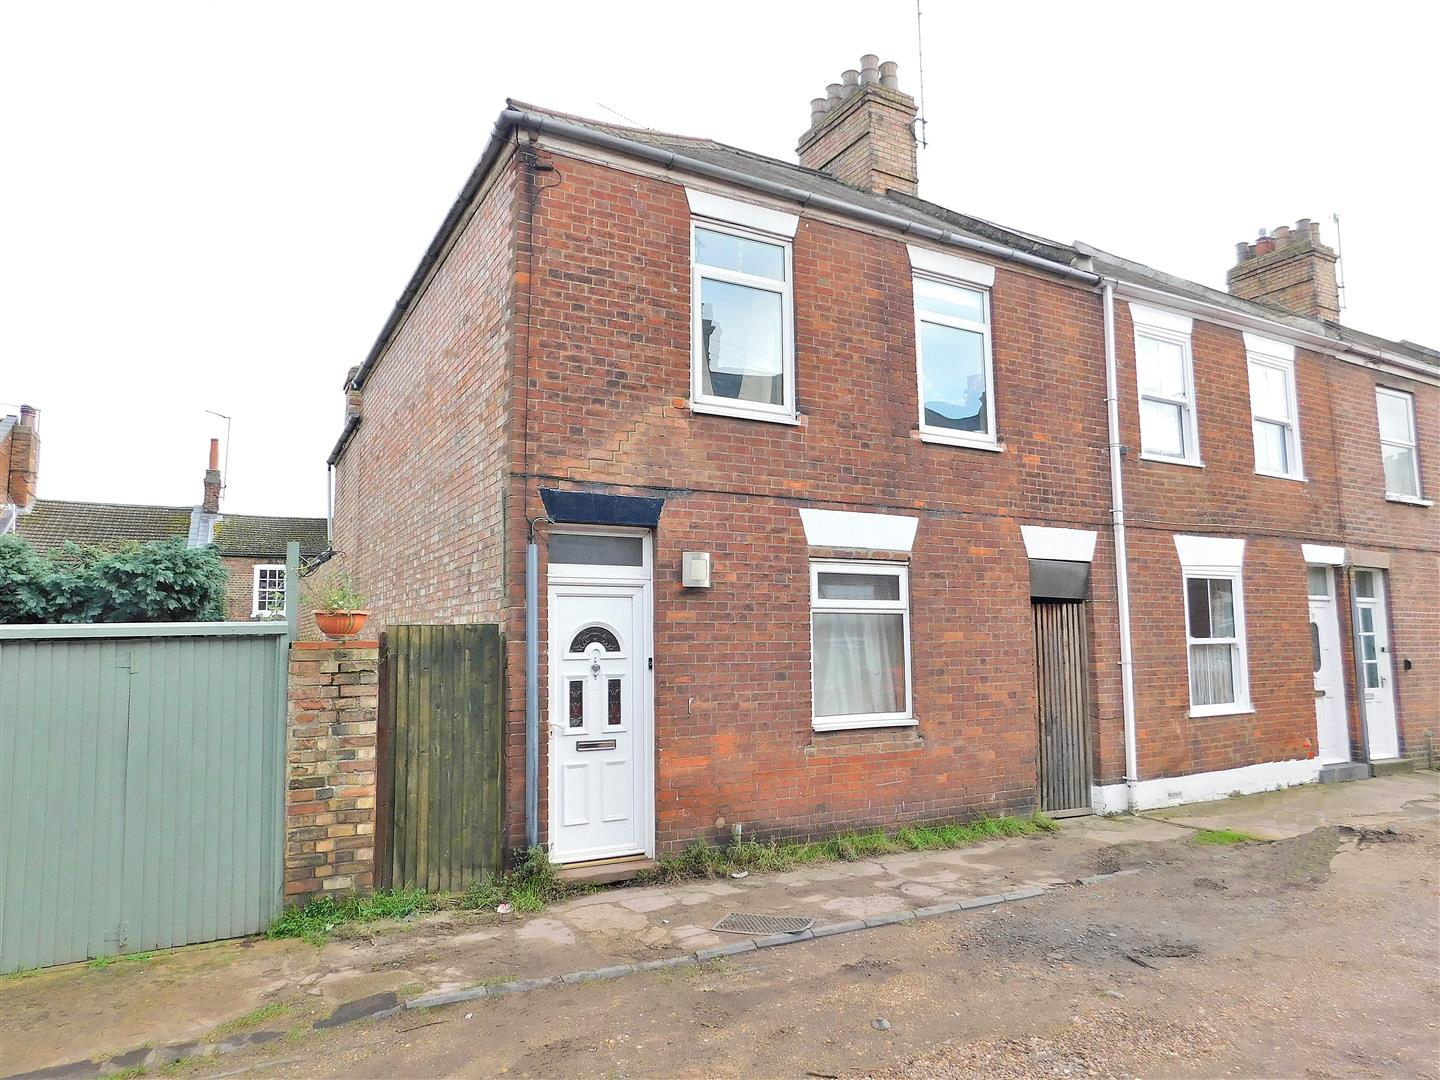 3 bed end of terrace house for sale in King's Lynn, PE30 1EE, PE30